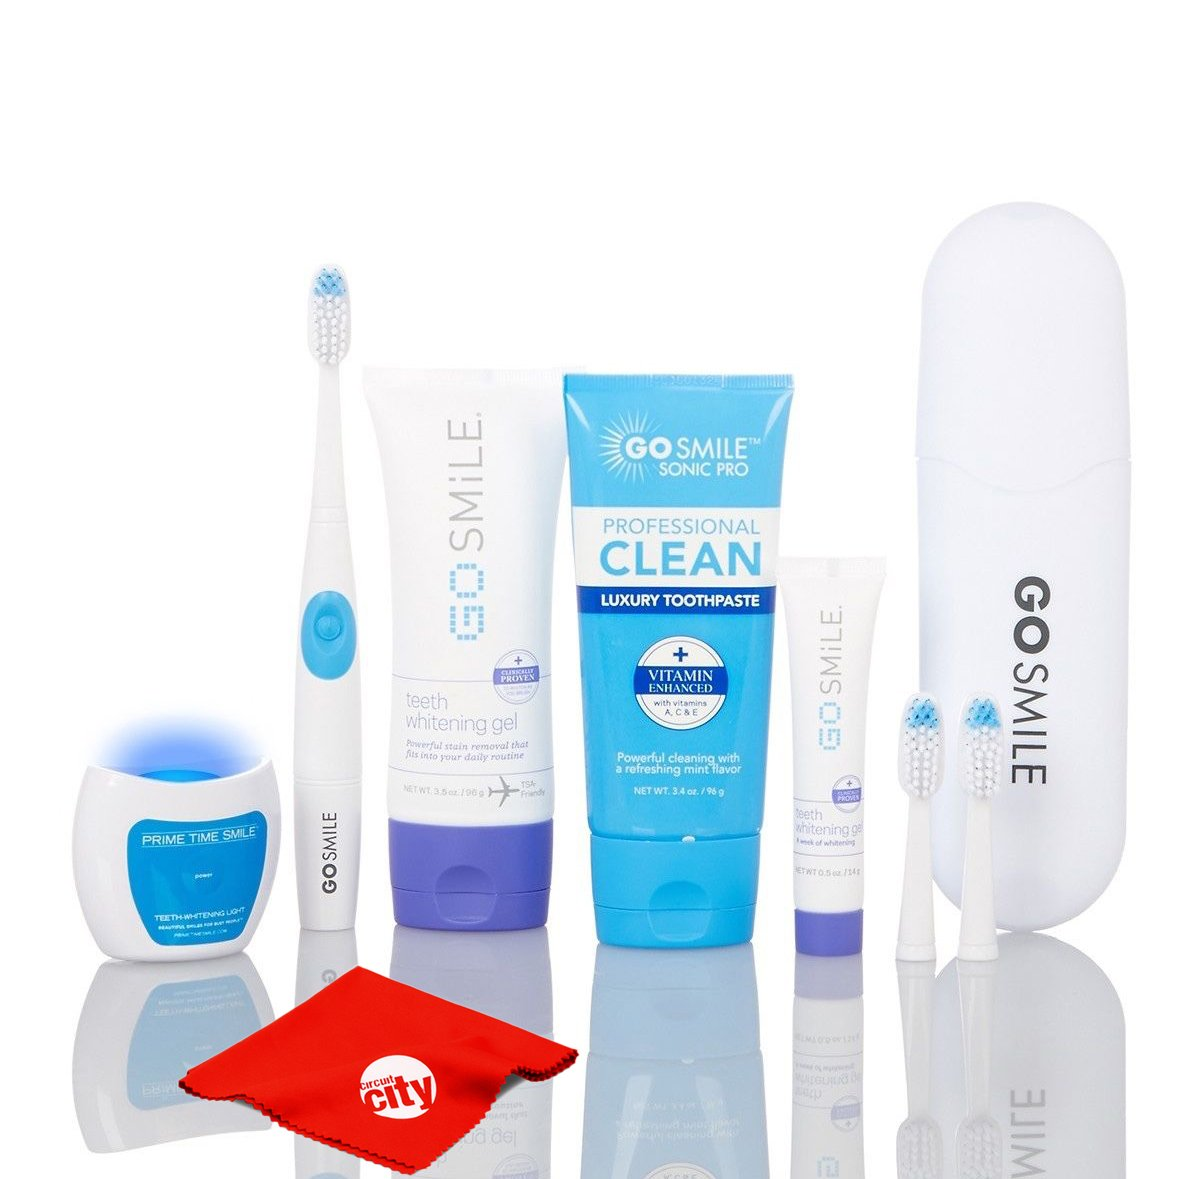 Go Smile Elite Pro Teeth Whitening System with Advanced Gel, Toothpaste, Electric Toothbrush and UV Light